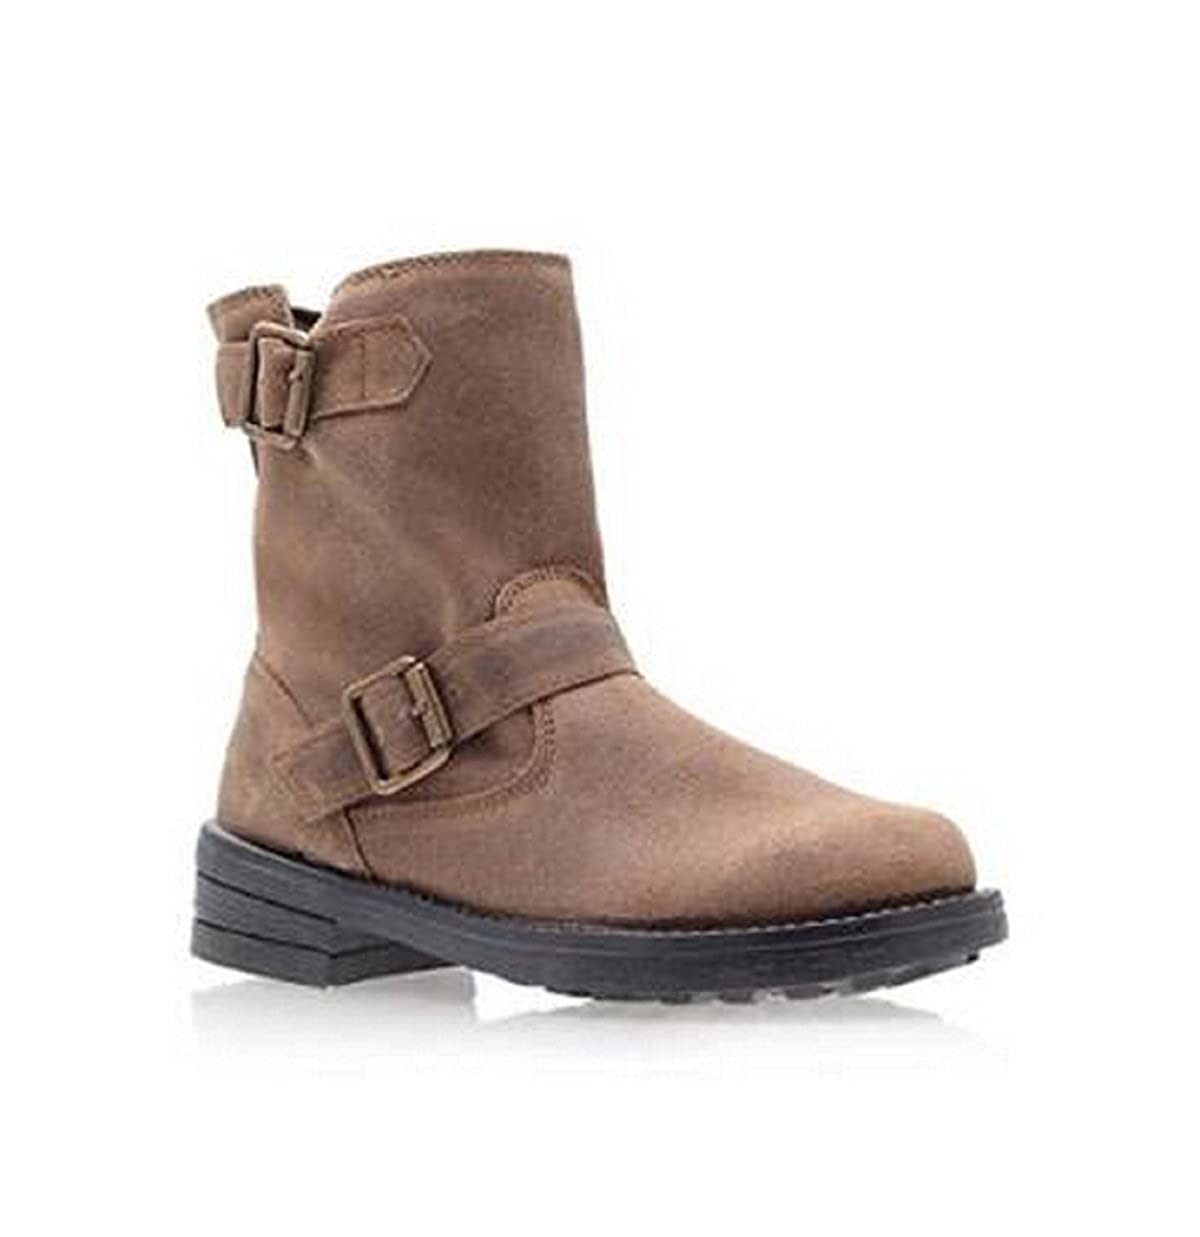 amazing price popular brand professional sale MISS KURT GEIGER Suede Leather Ankle Boots with Double Buckle ...